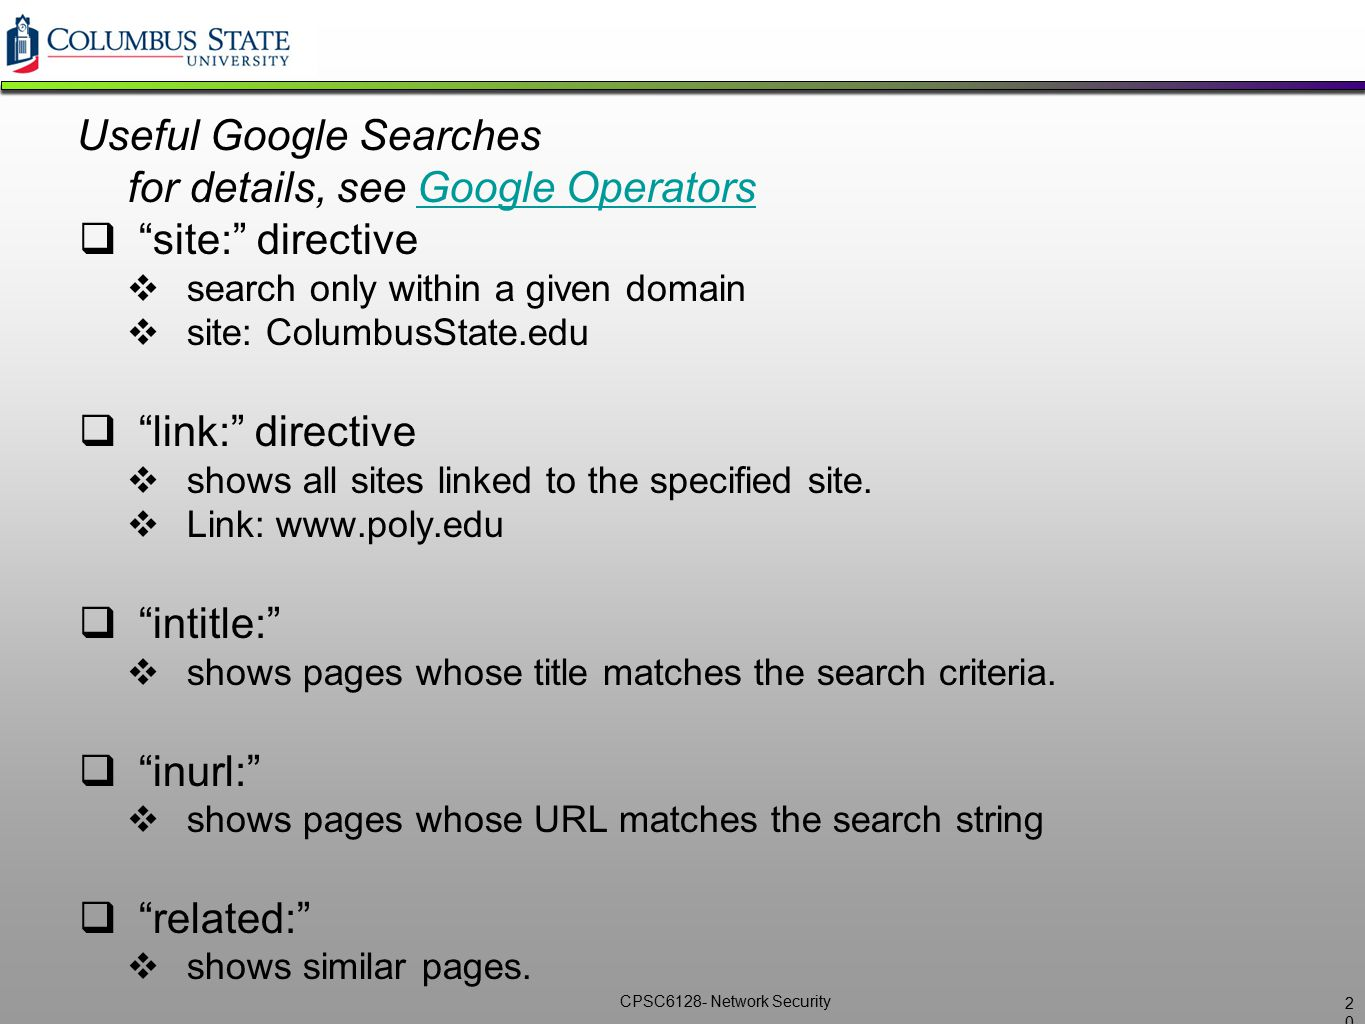 Useful Google Searches for details, see Google Operators